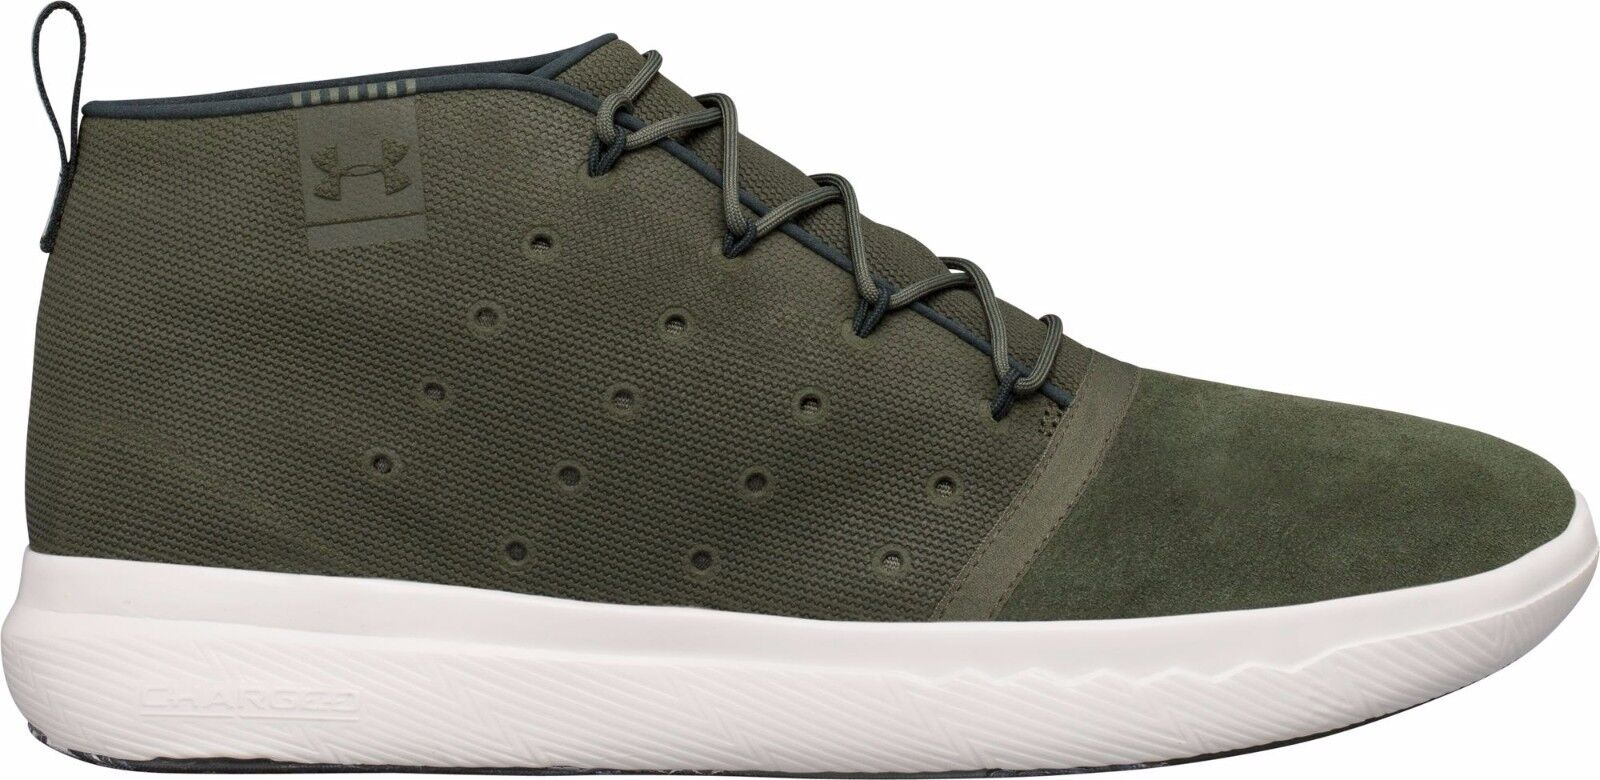 Under Armour Men's Charged 24/7 Mid NM SIZE 12.5M